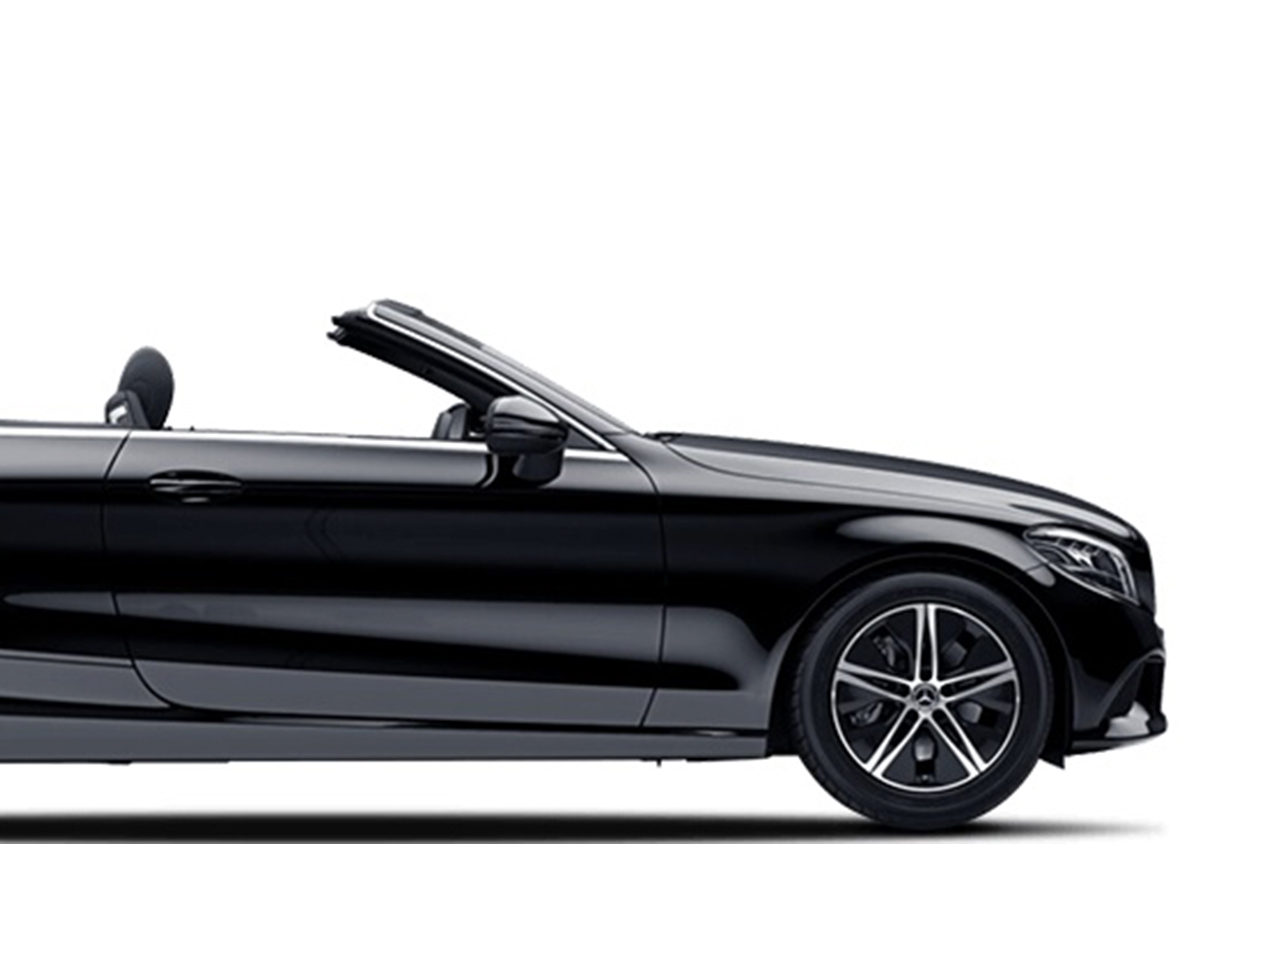 Mercedes C-Class Convertible car for hire